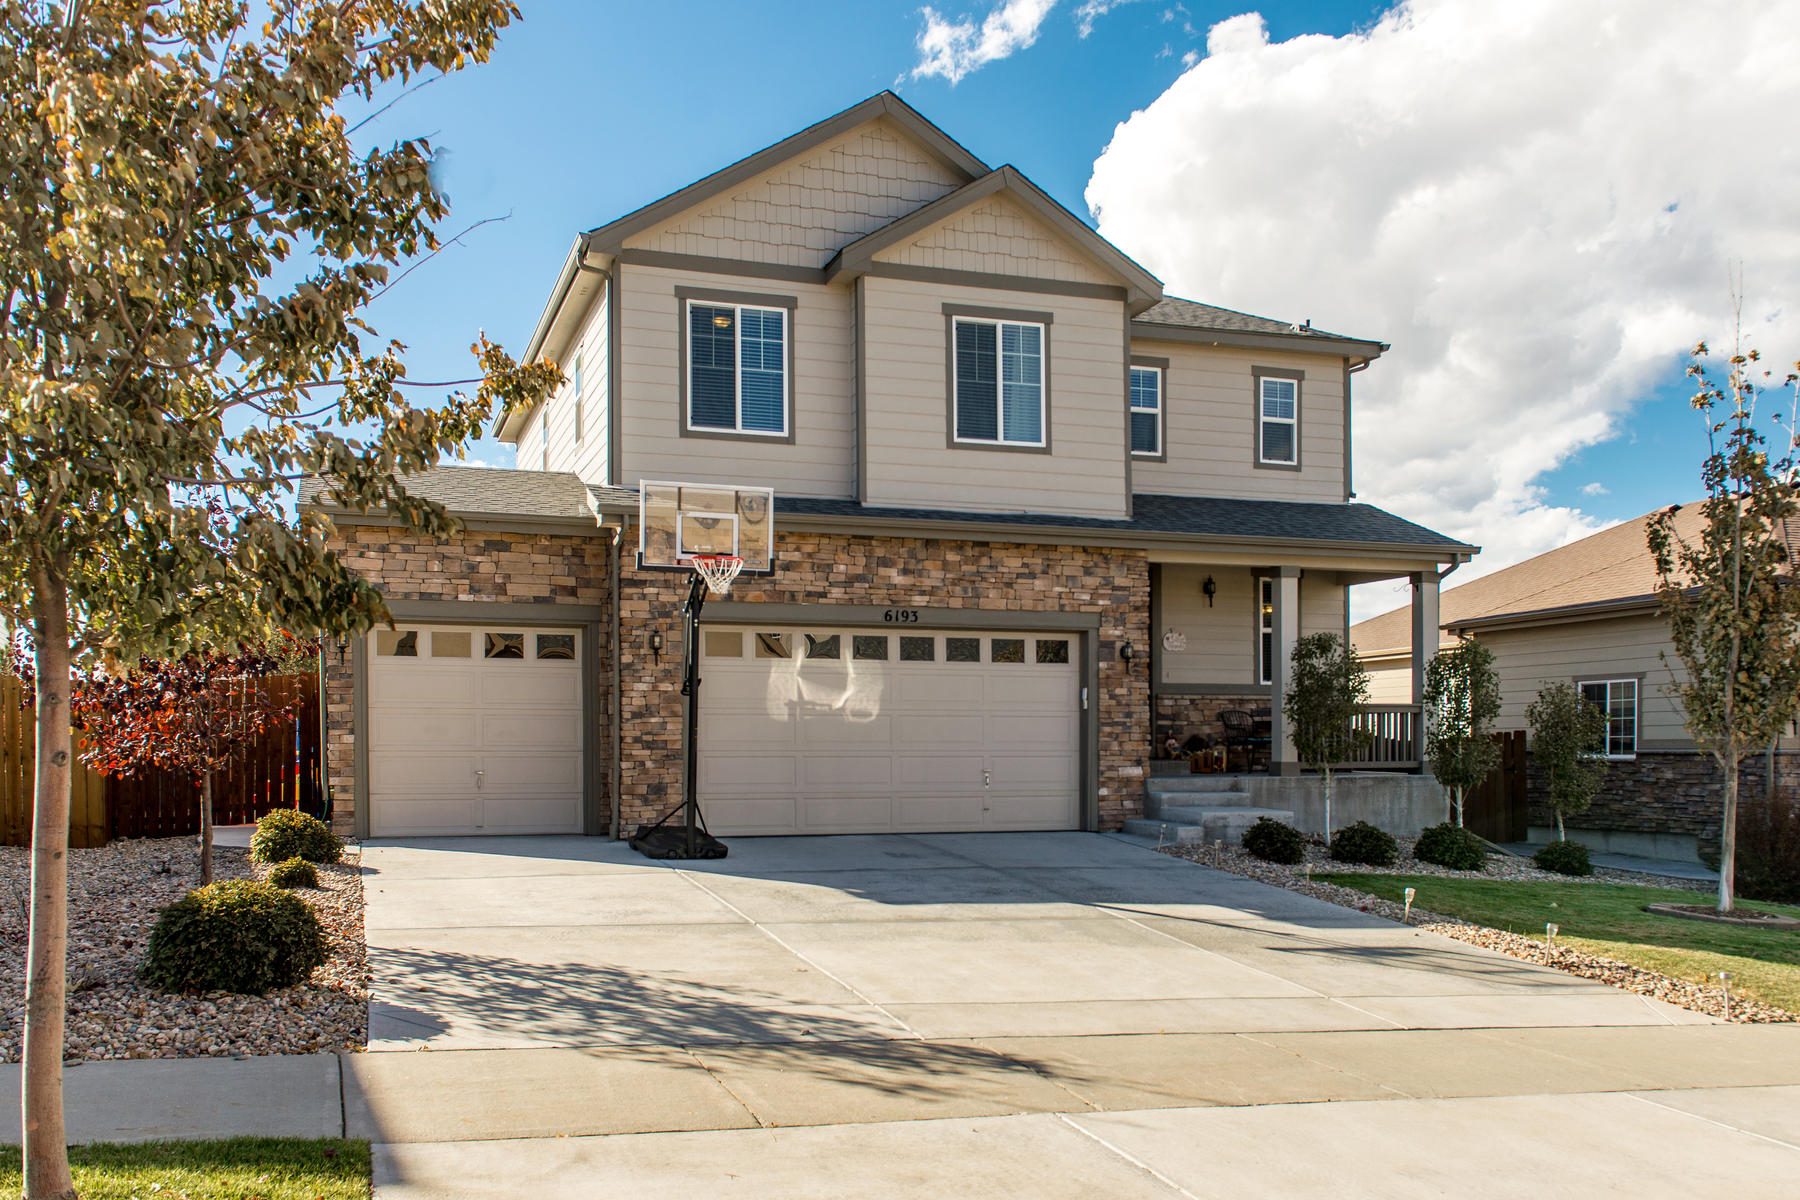 Single Family Home for Active at 6193 S Jackson Gap Ct 6193 S Jackson Gap Ct Aurora, Colorado 80016 United States